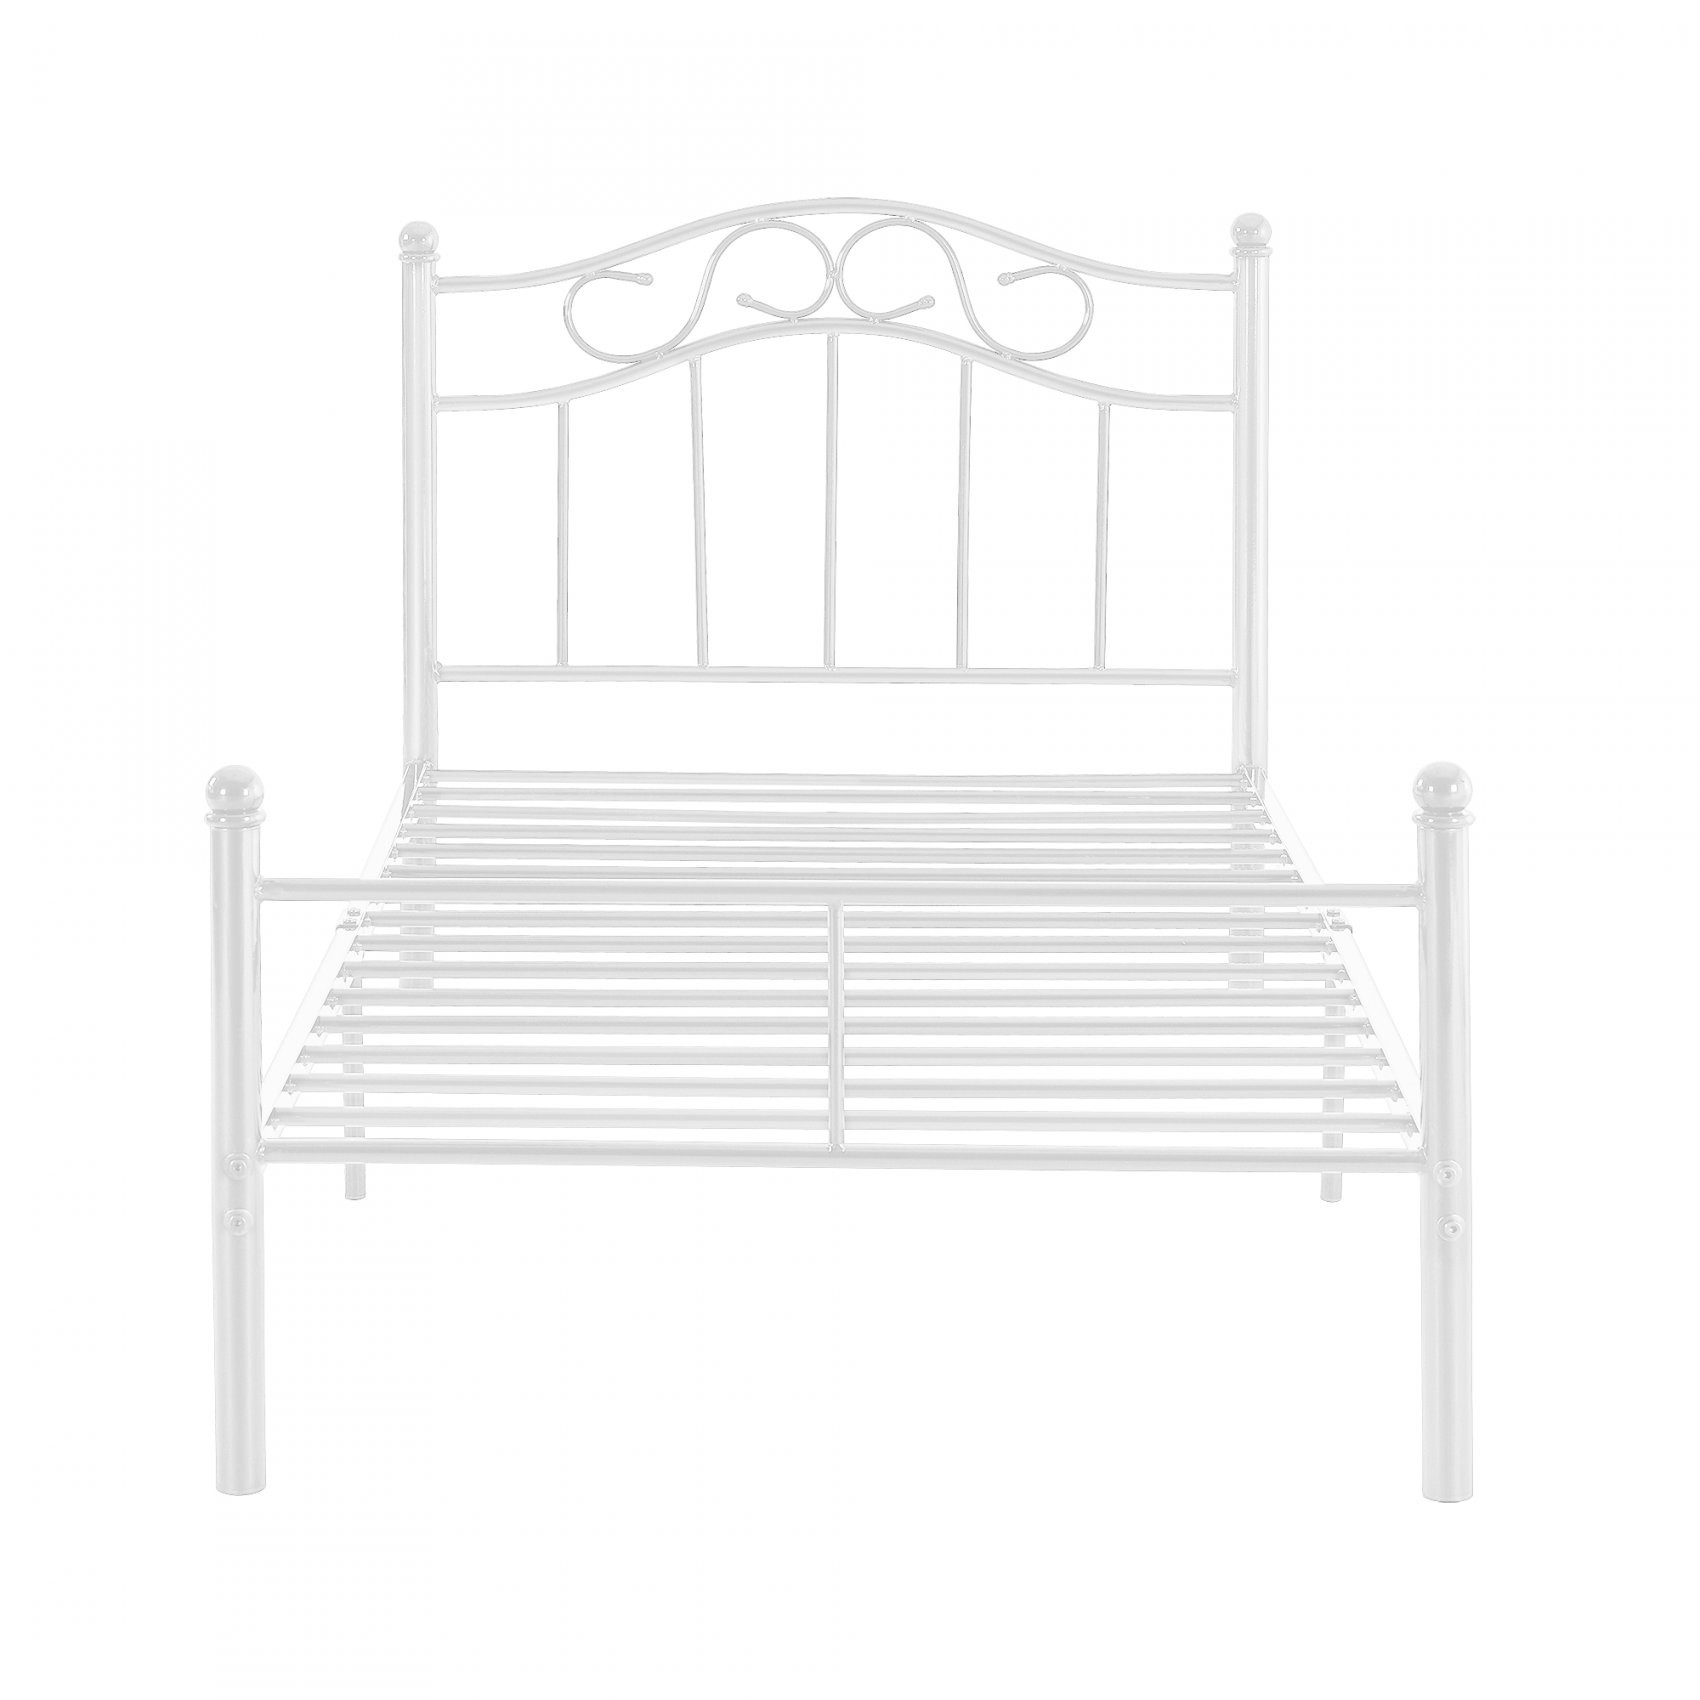 Encasa]® Metallbett 90120140180200X200 Bett Bettgestell von Bett 120X200 Metall Photo